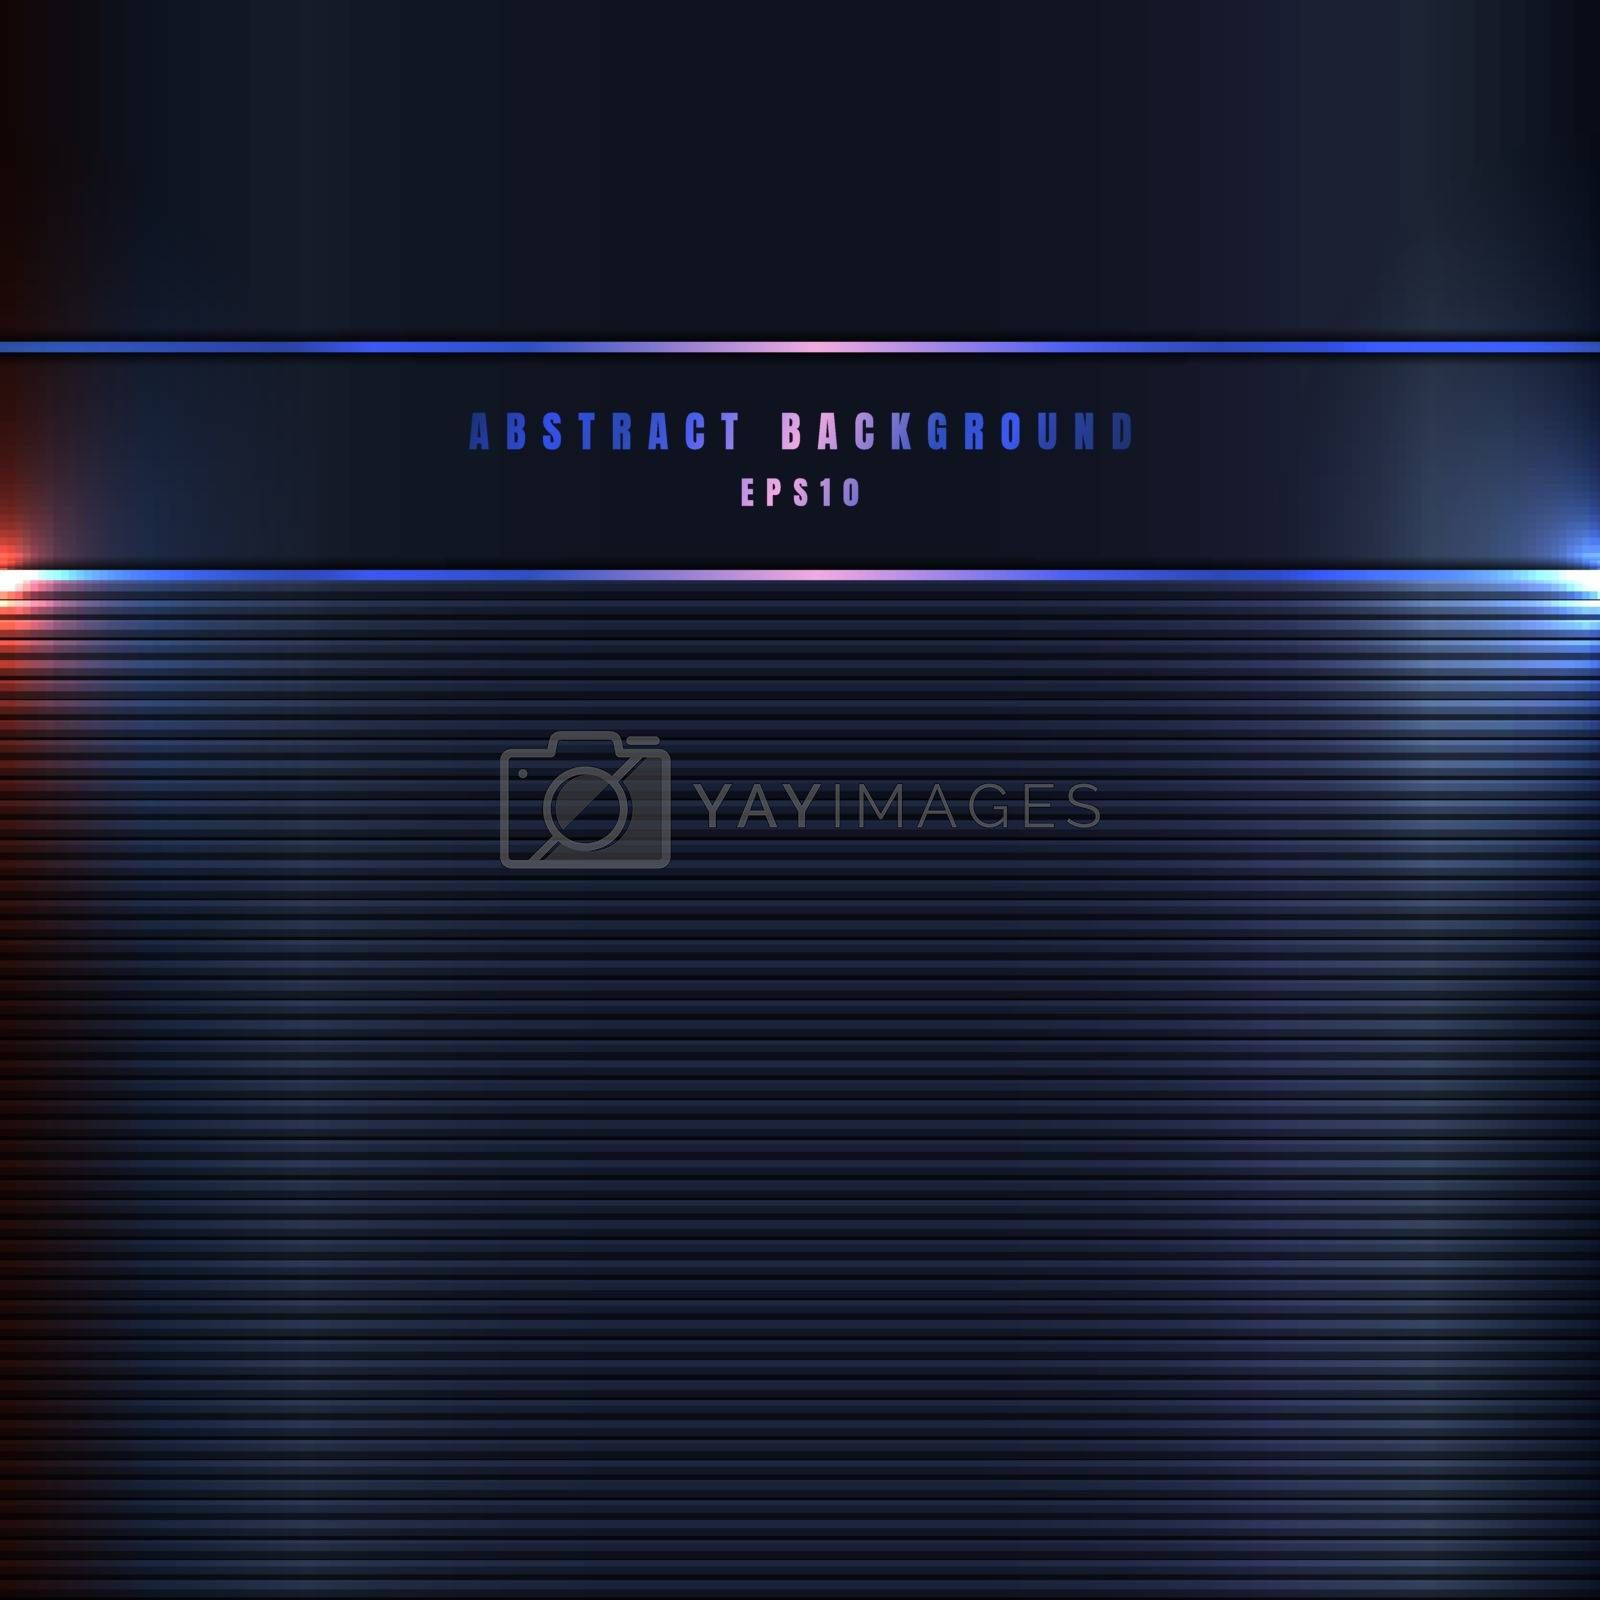 Abstract metal lines with lighting effect on dark blue metallic background and texture. Vector illustration